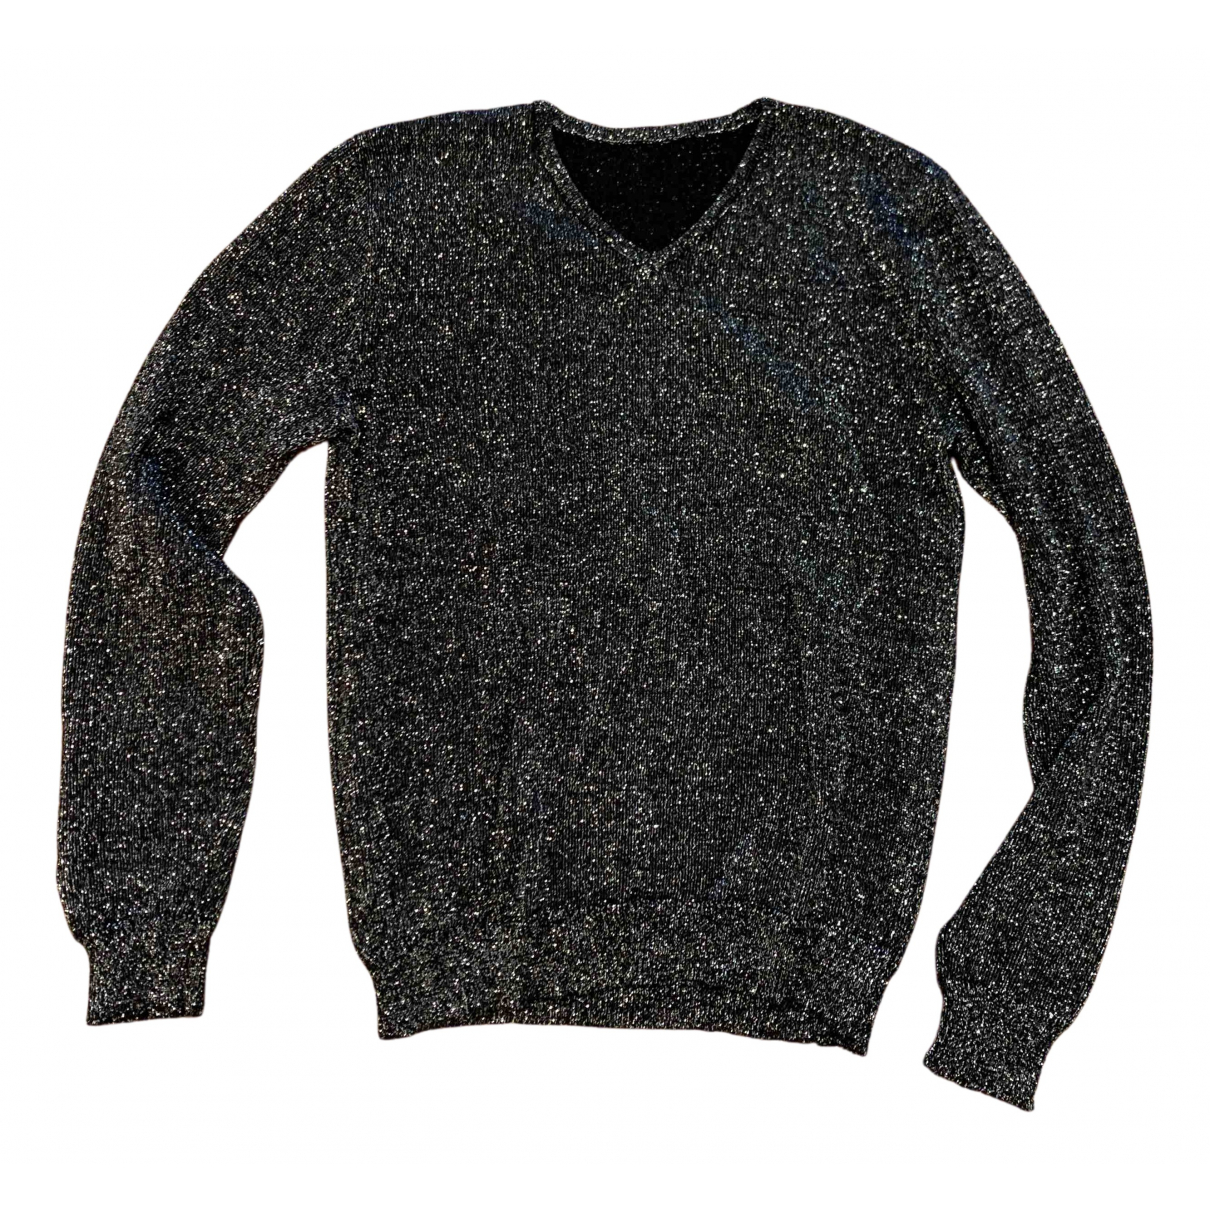 Non Signé / Unsigned N Silver Knitwear for Women One Size IT